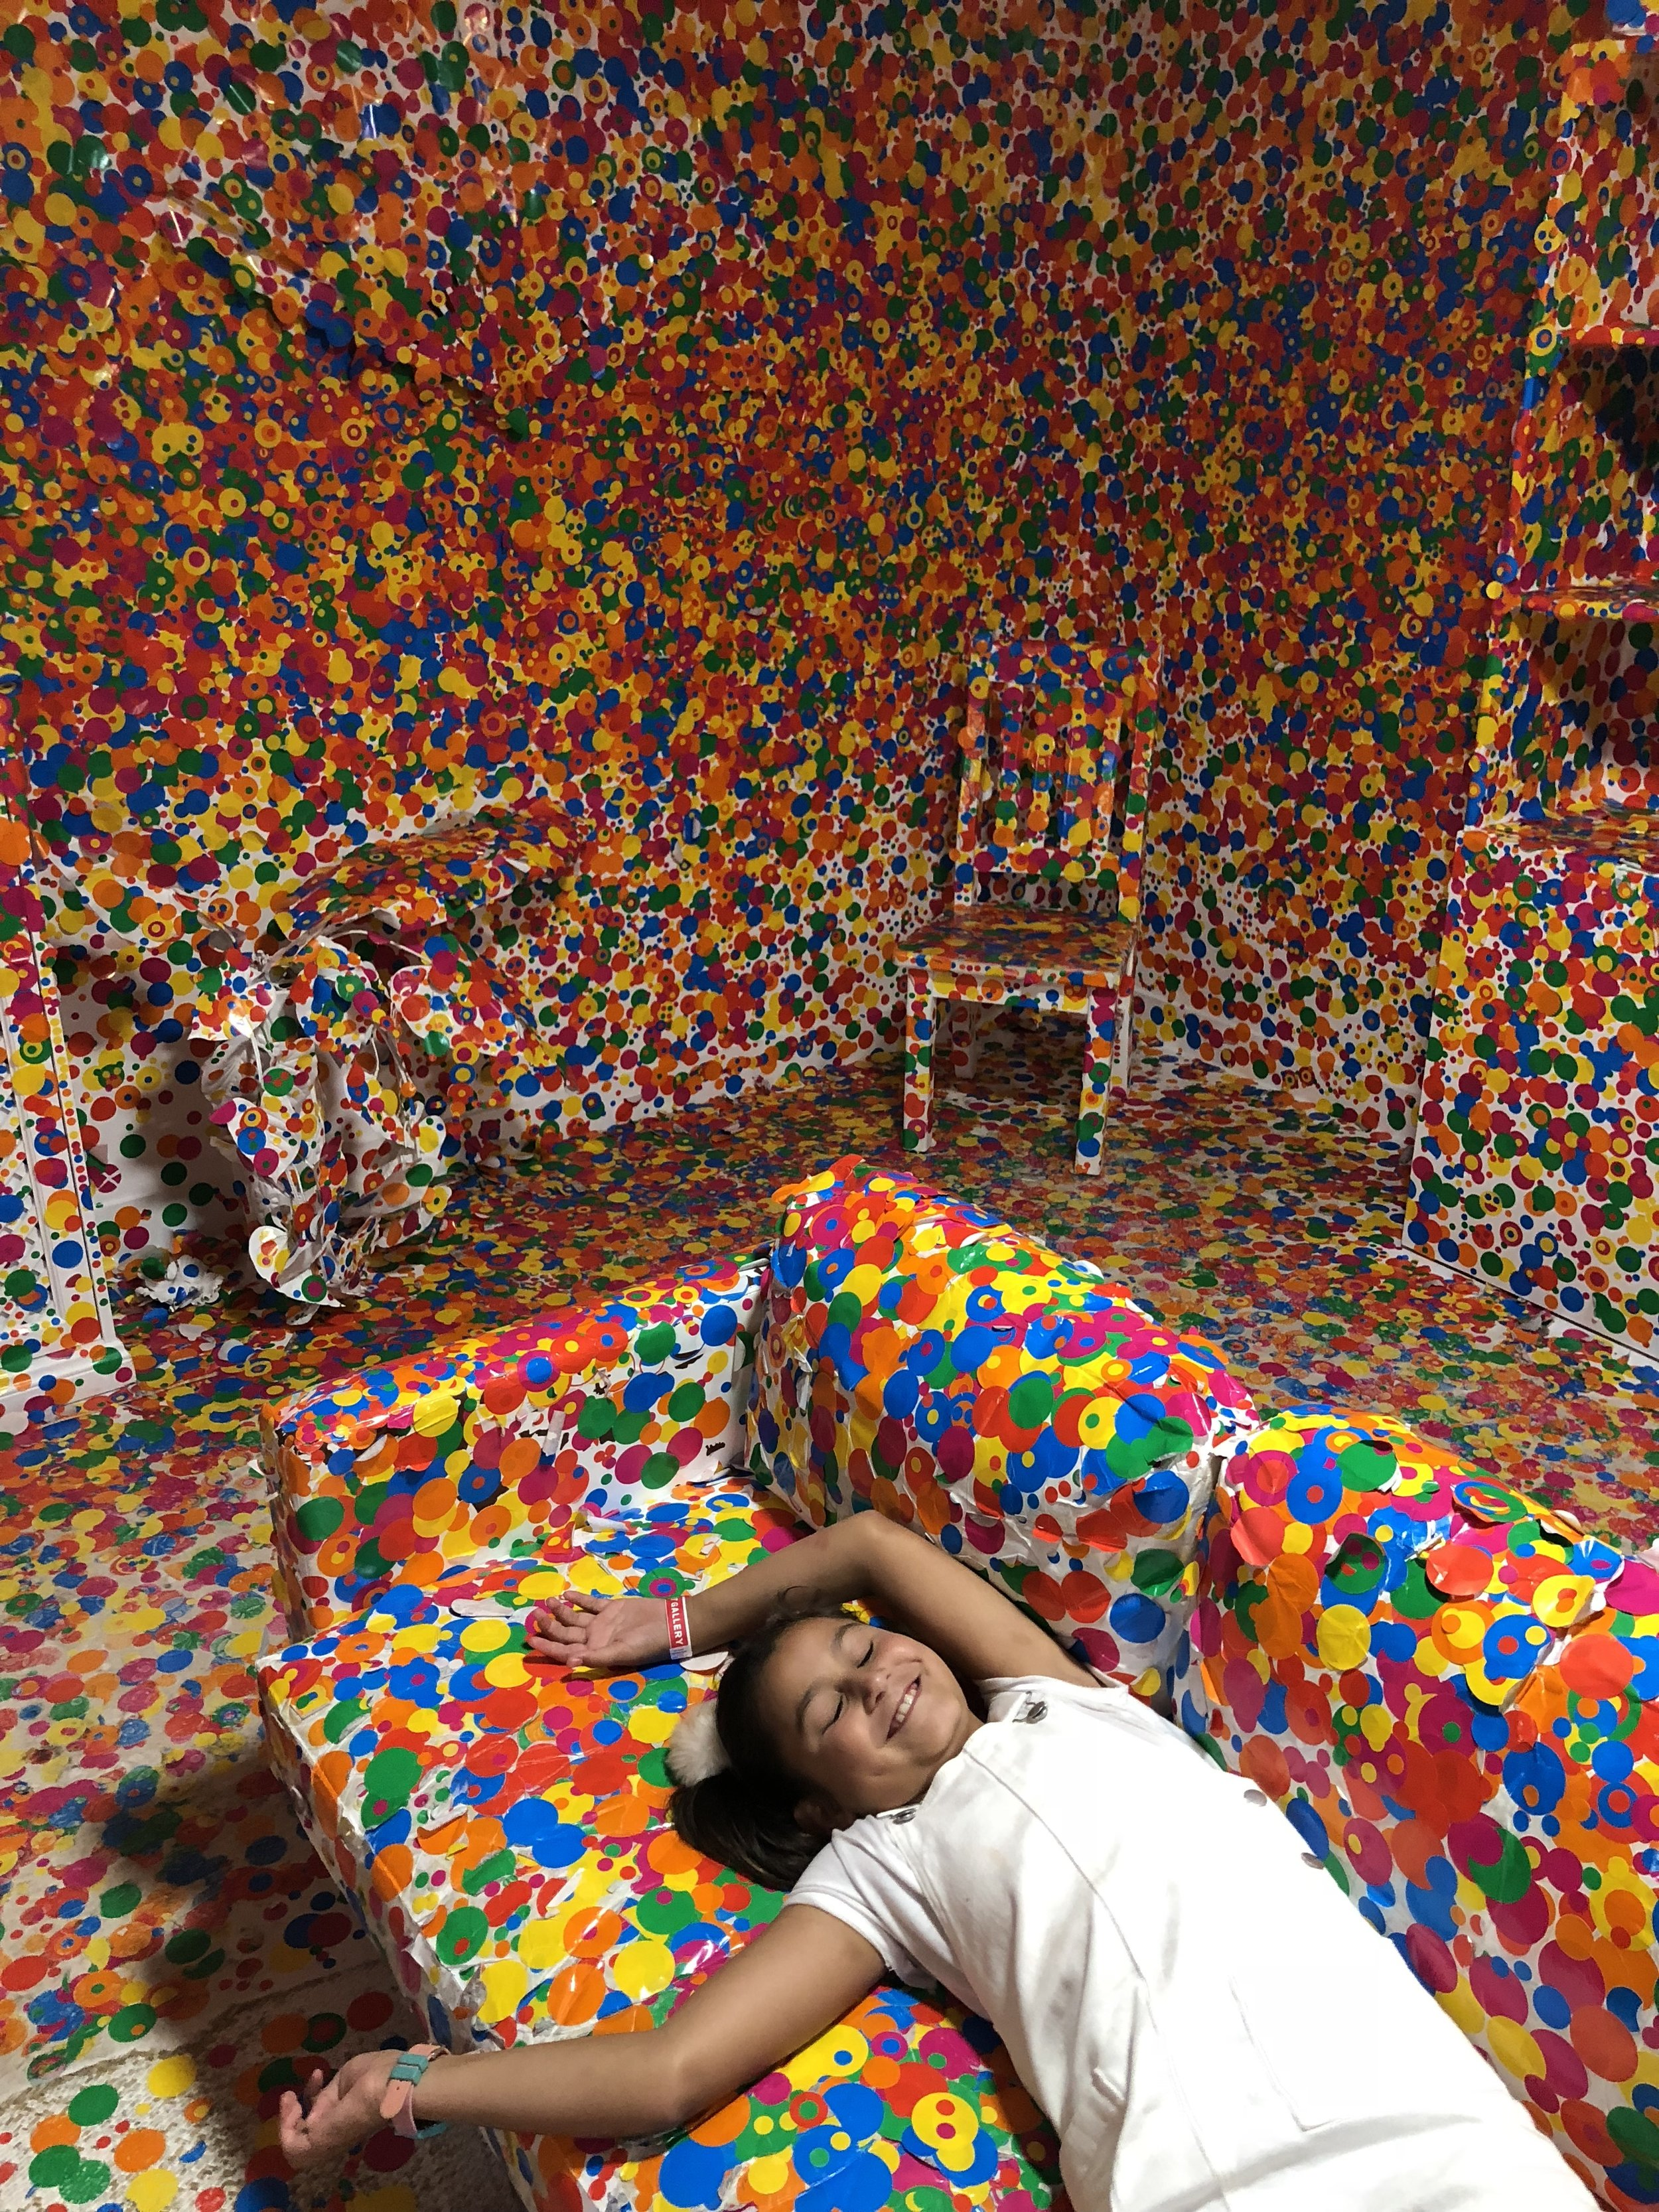 Yayoi Kusama: The Obliteration Room. - I was determined to get the kids to this exhibition. Colour. Dots. Kinesthetic, visual and interpersonal learning. Yasss. The hype was real.